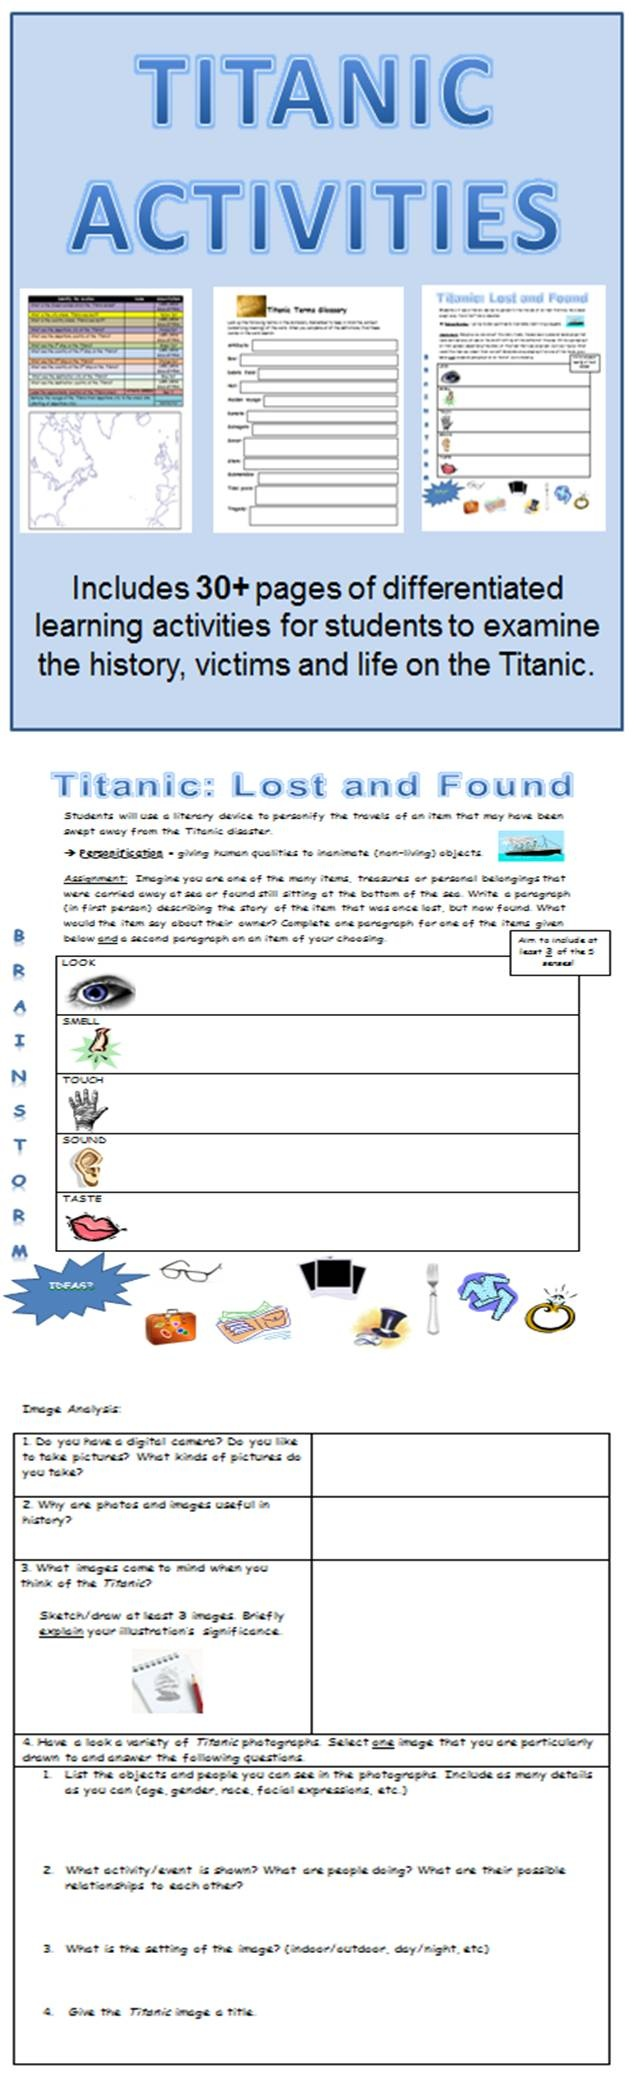 April marks the ANNIVERSARY of the Titanic. This Titanic lessons and activity pack includes 30+ pages of differentiated lesson activities and spans historical information, facts and life on the Titanic. Bring the Titanic to the classroom and allow your students to explore this historical event in a fun and creative way.